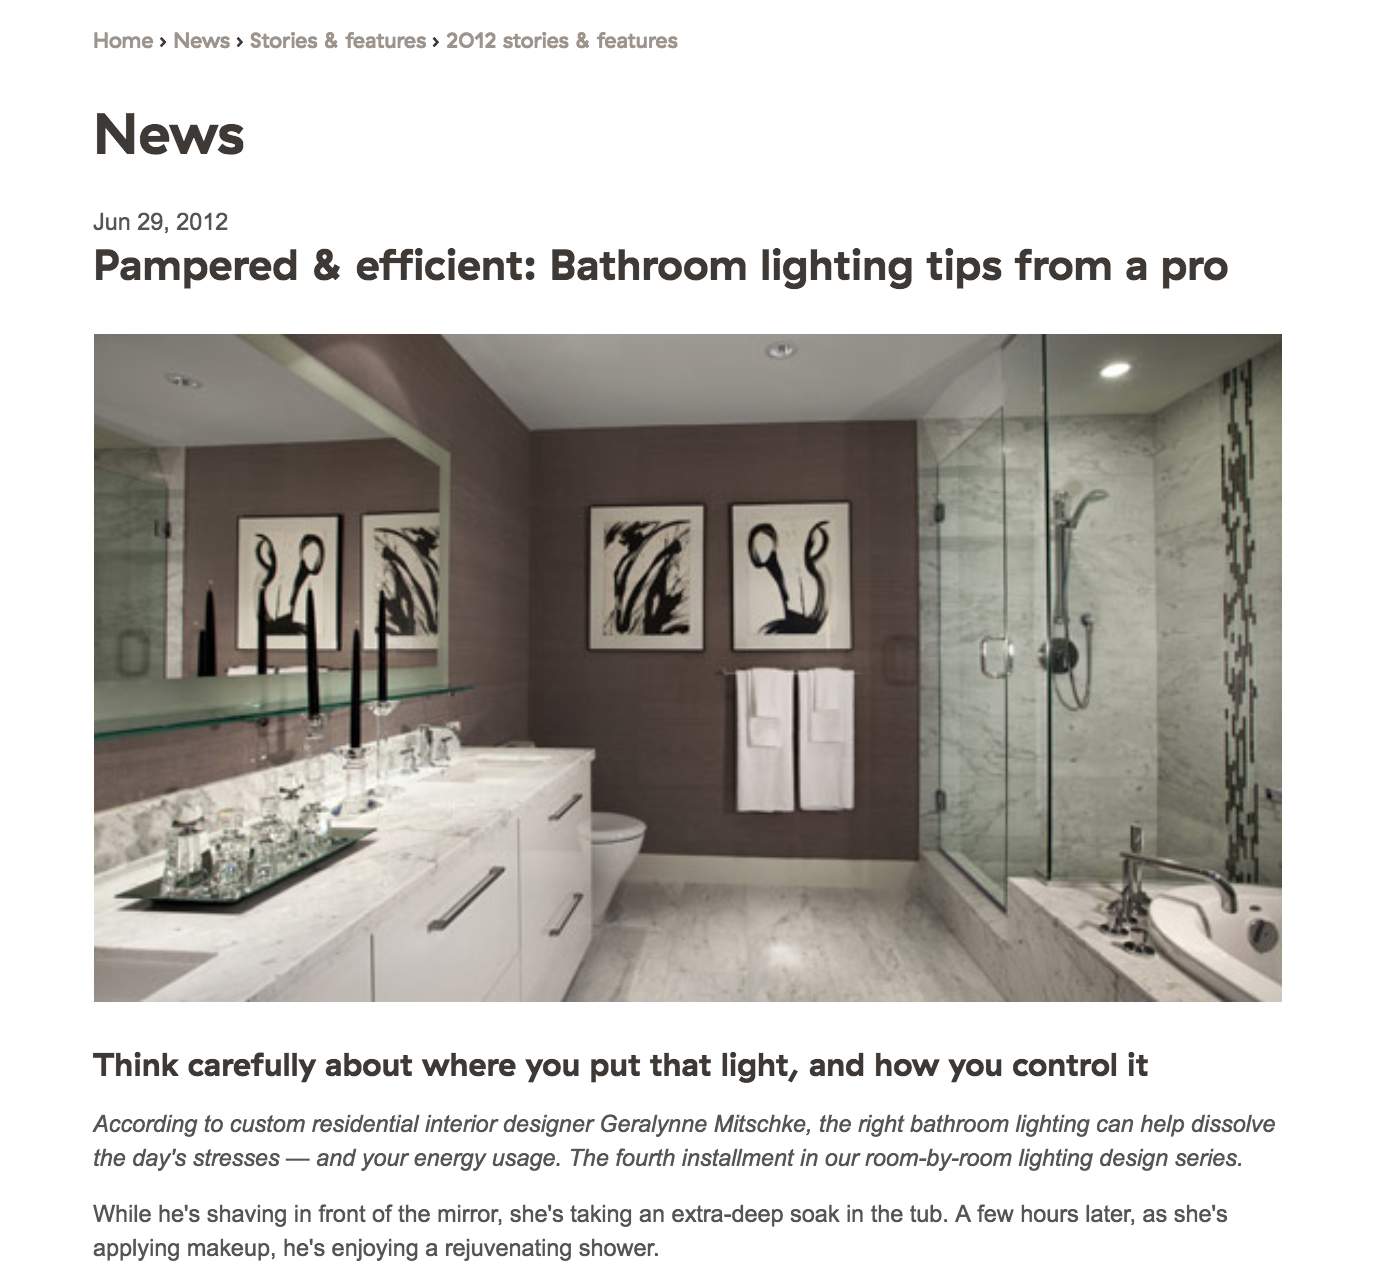 "BC HYDRO : ROOM BY ROOM LIGHTING SERIES ""According to custom residential interior designer Geralynne Mitschke, the right bathroom lighting can help dissolve the day's stresses — and your energy usage. The fourth installment in our room-by-room lighting design series."""